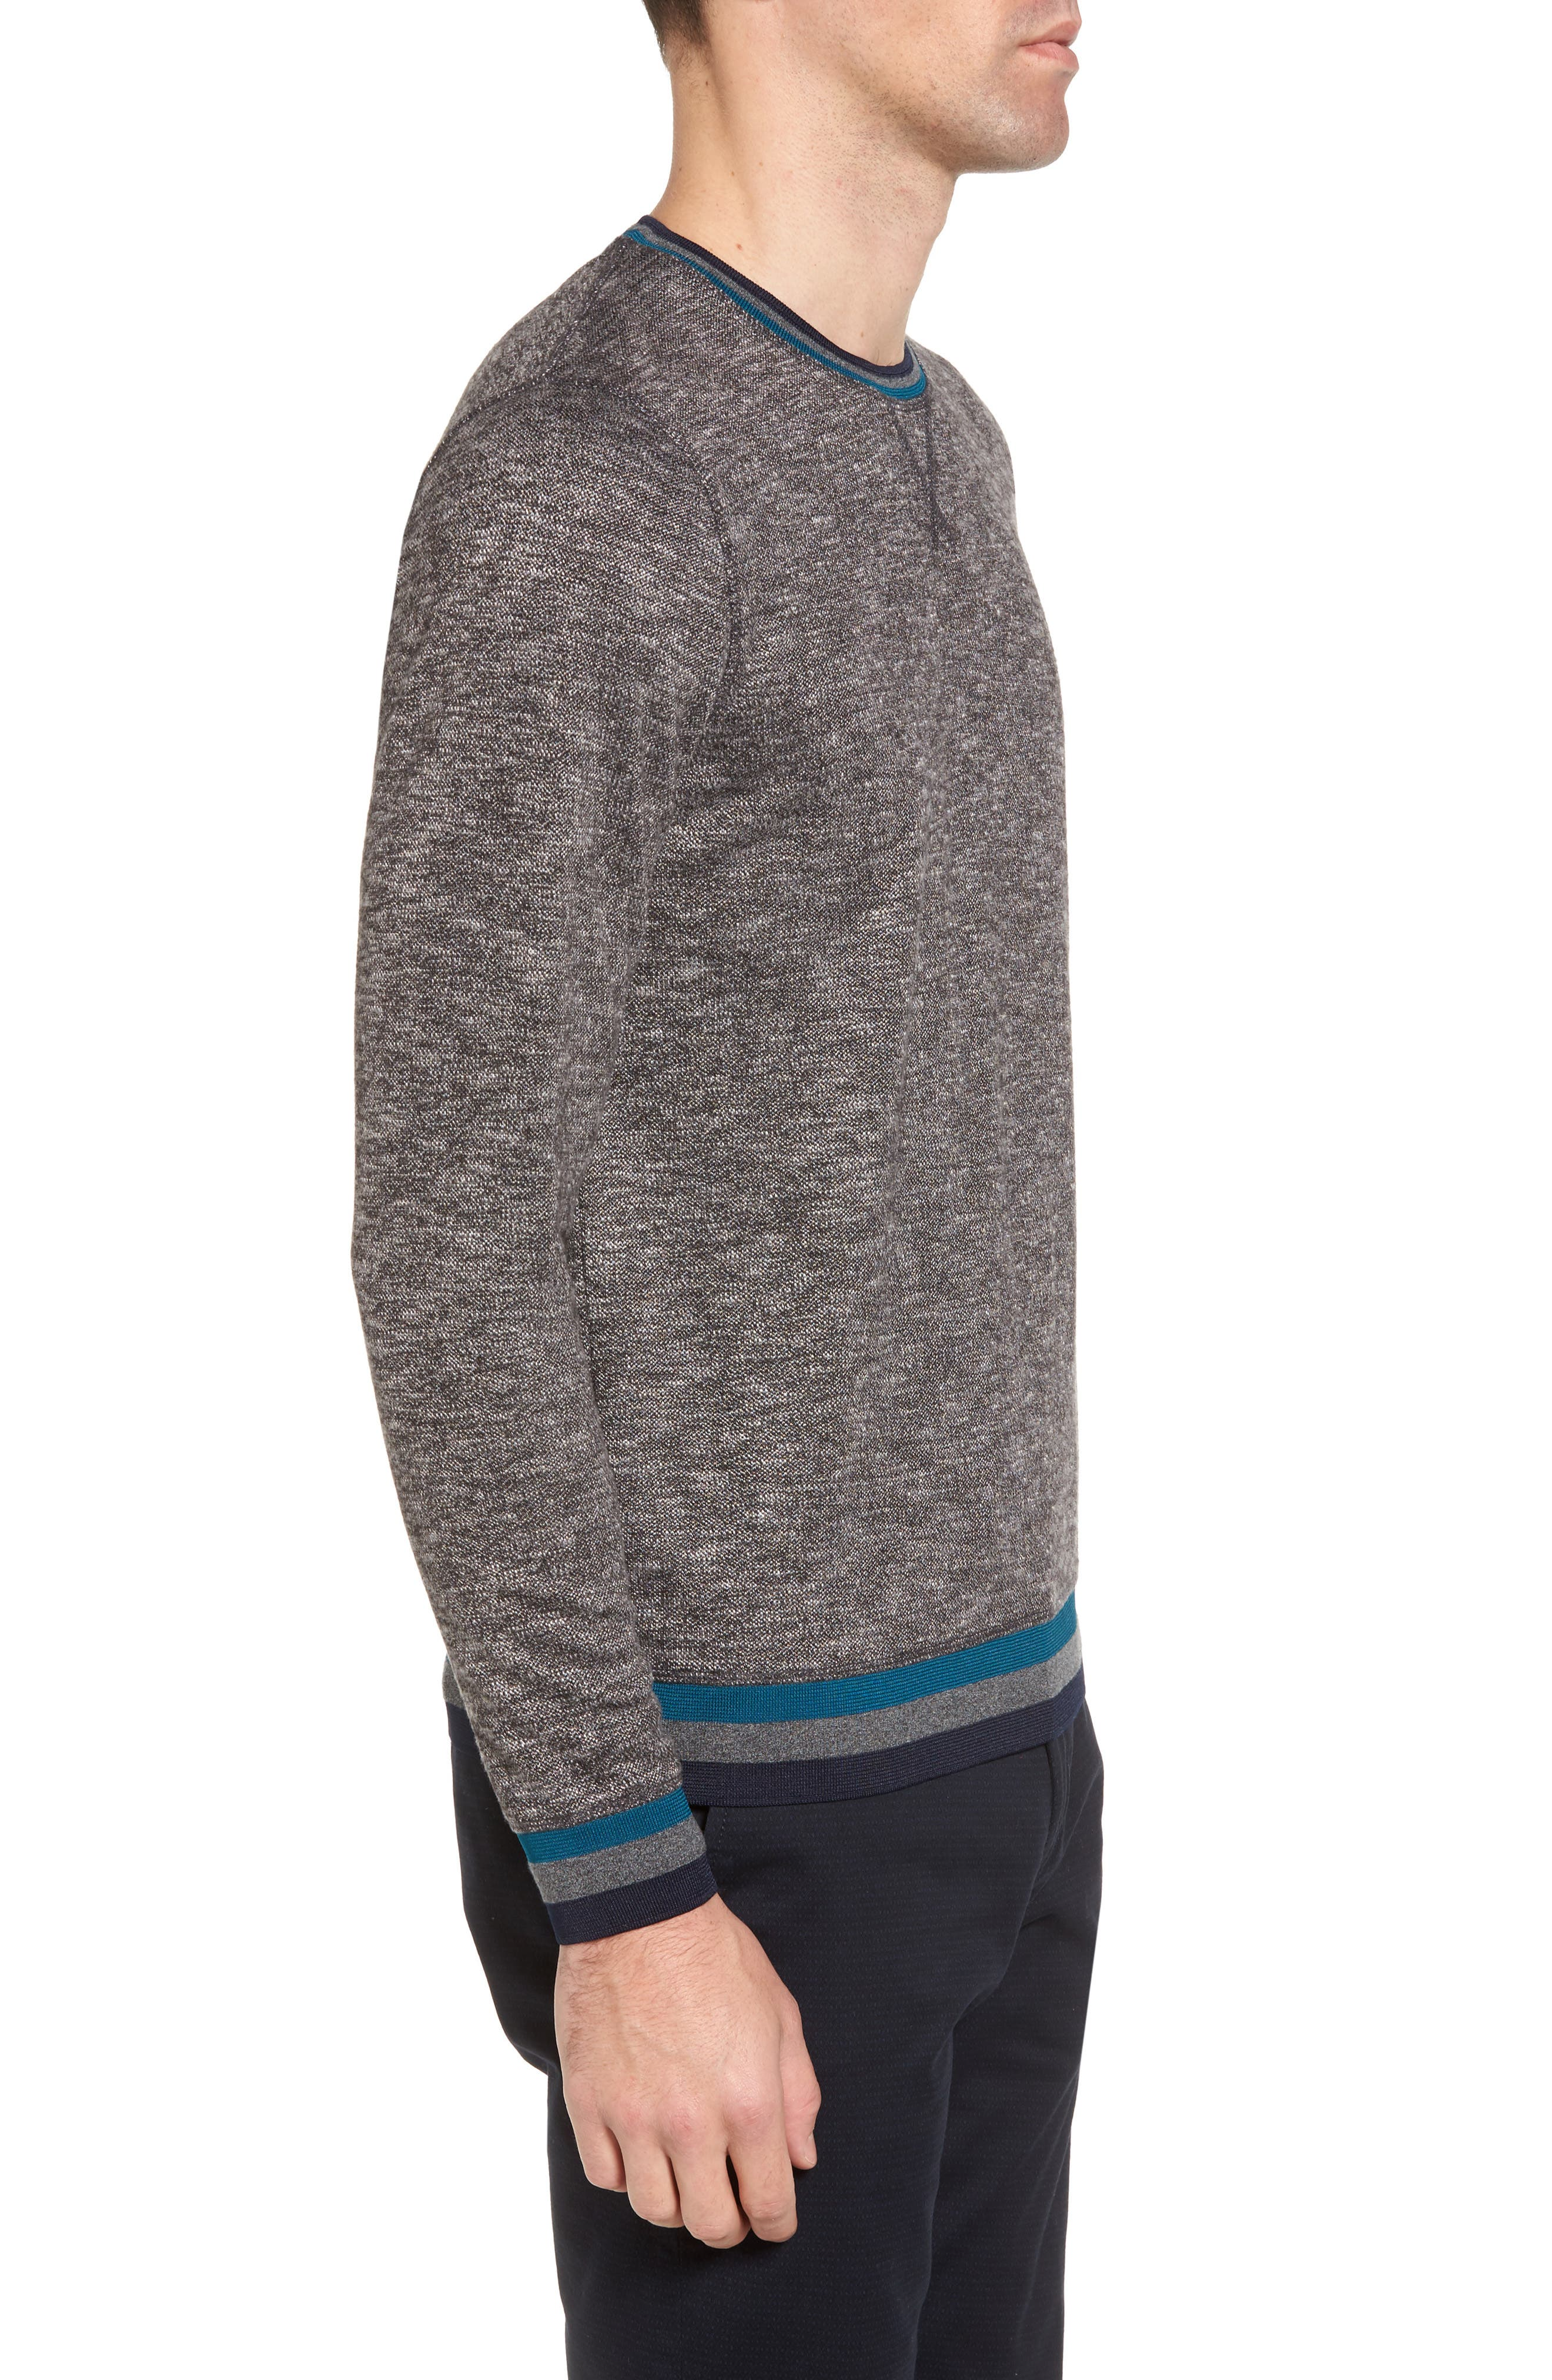 Slater Trim Fit Slub Sweatshirt,                             Alternate thumbnail 3, color,                             Black